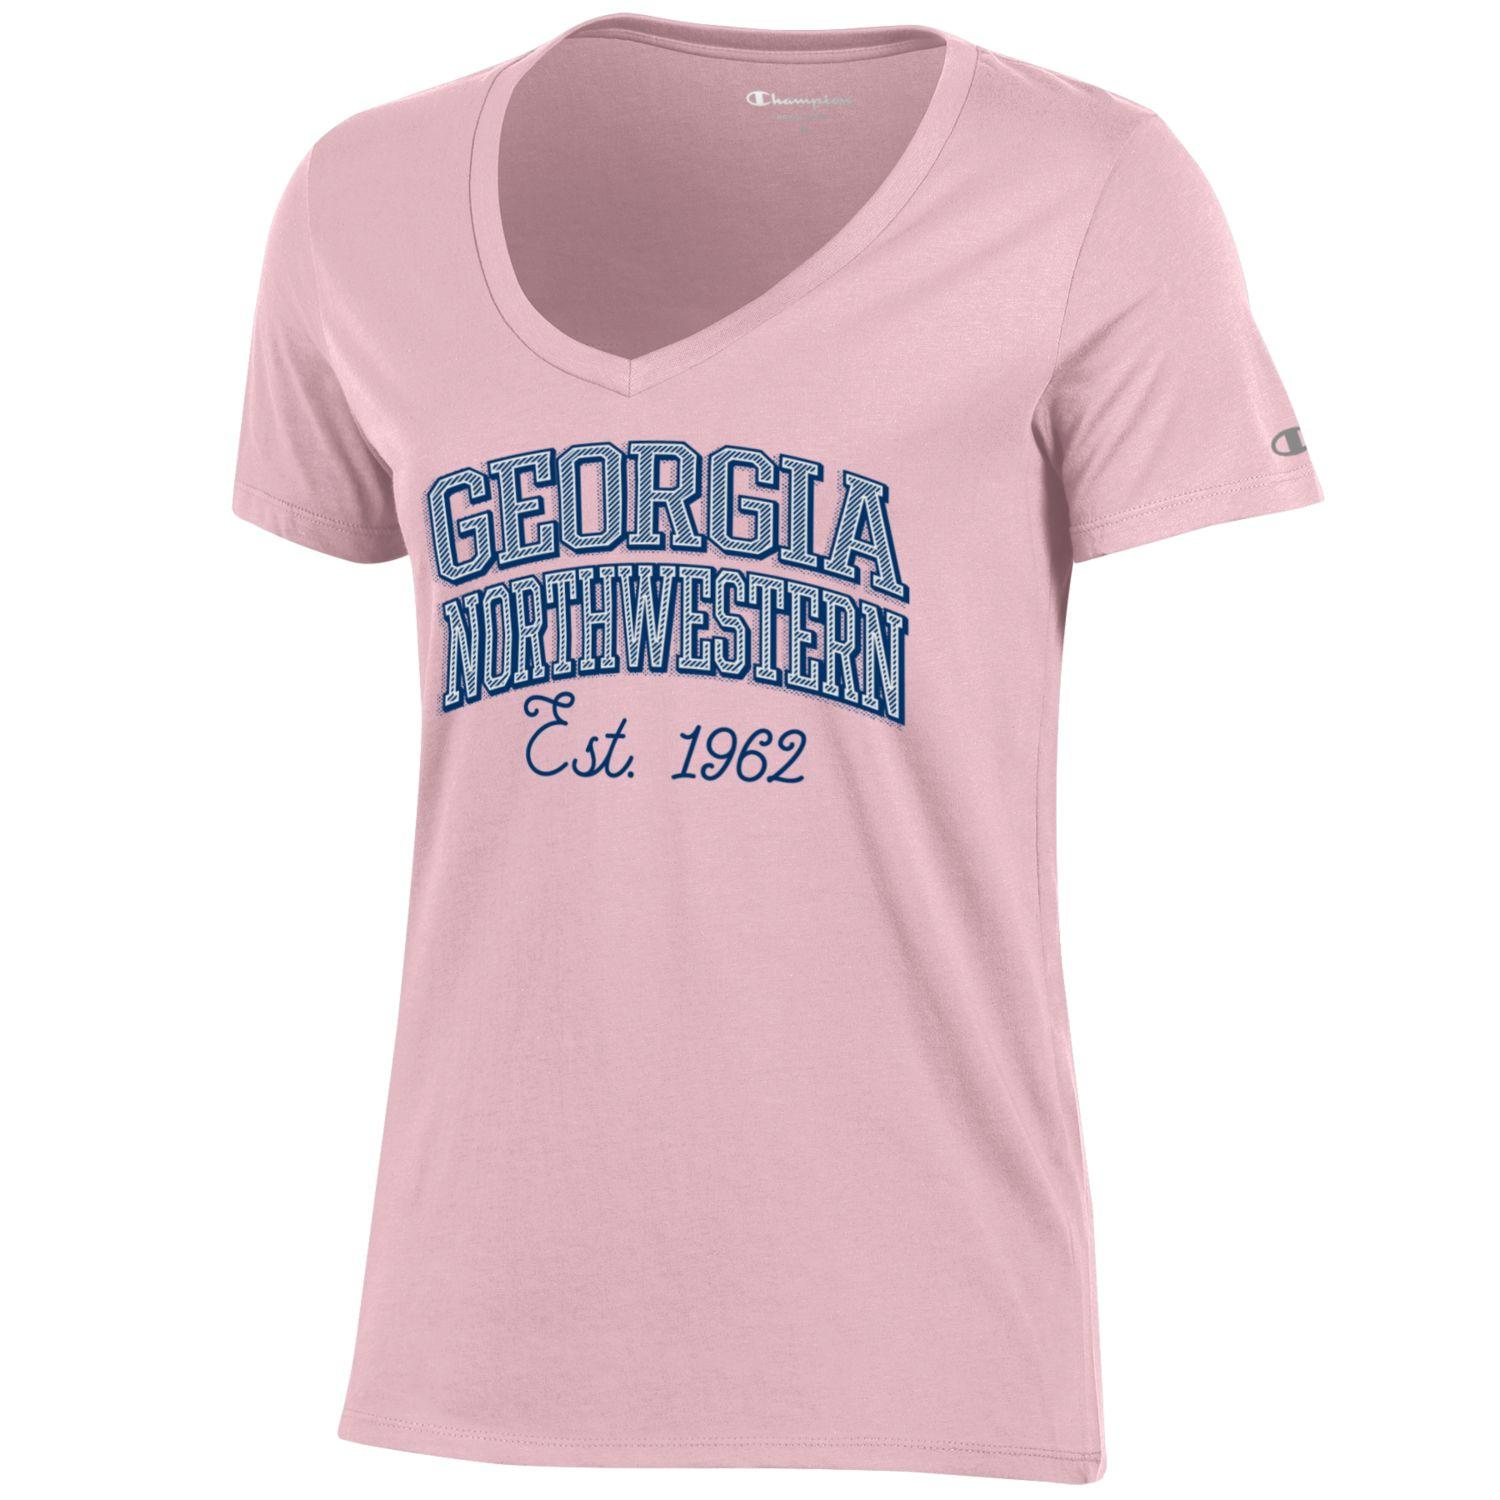 Georgia Northwestern Script Est. 1962 University Vneck